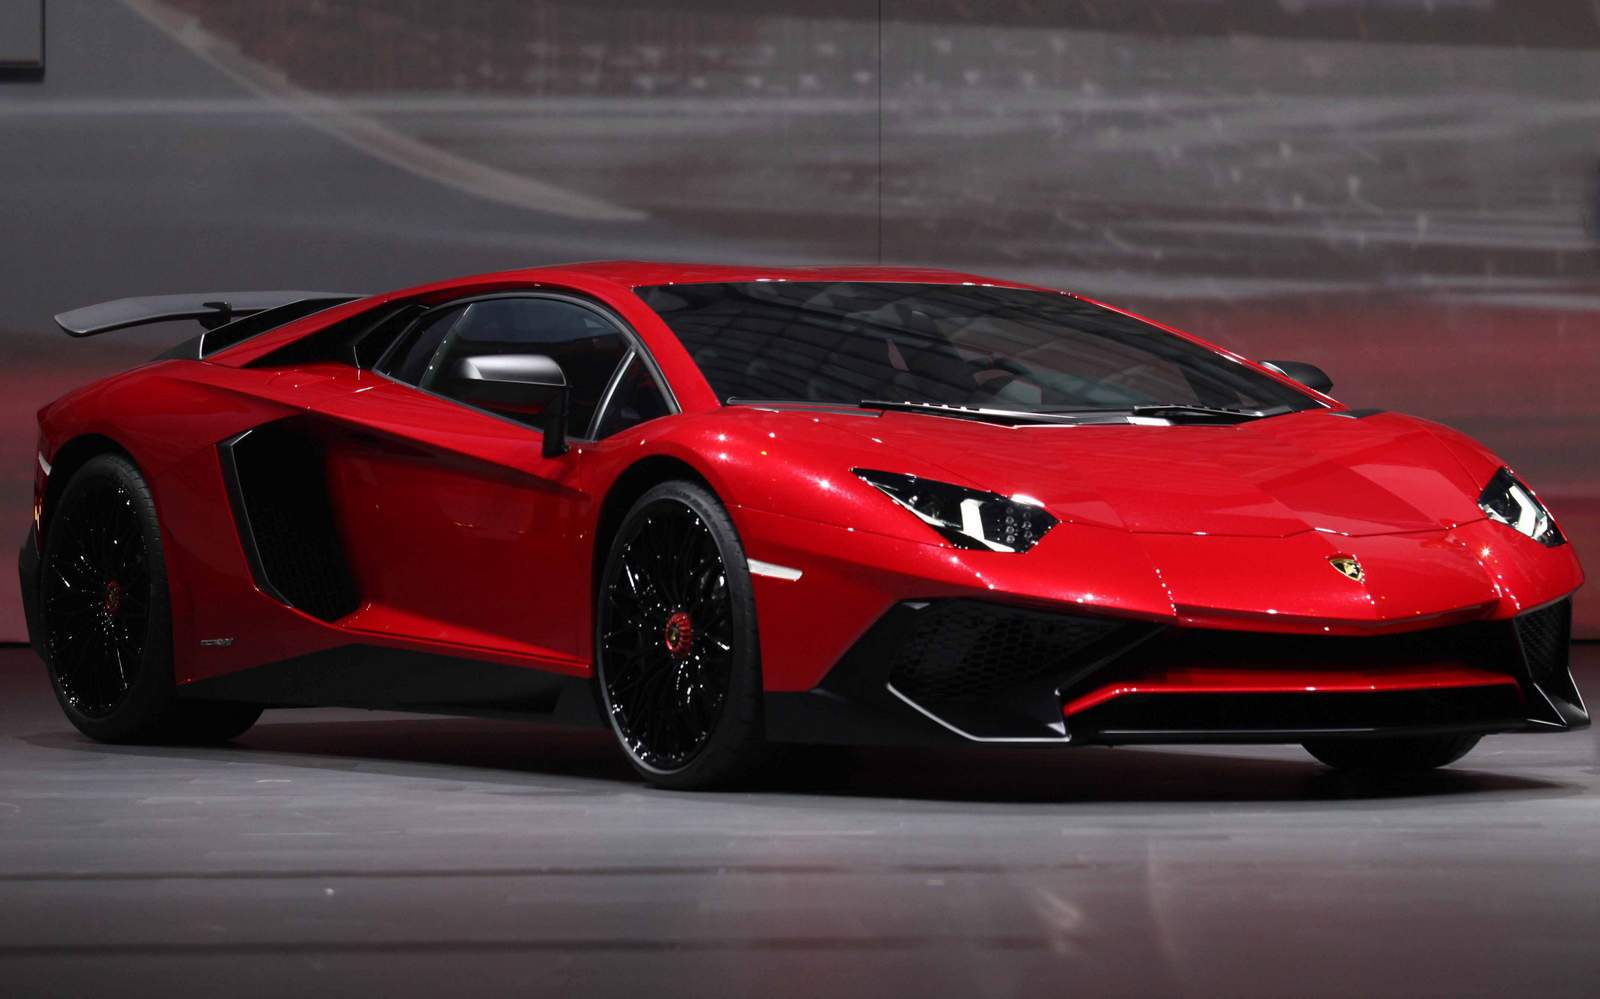 lamborghini huracan e aventador lamborghini comparison. Black Bedroom Furniture Sets. Home Design Ideas